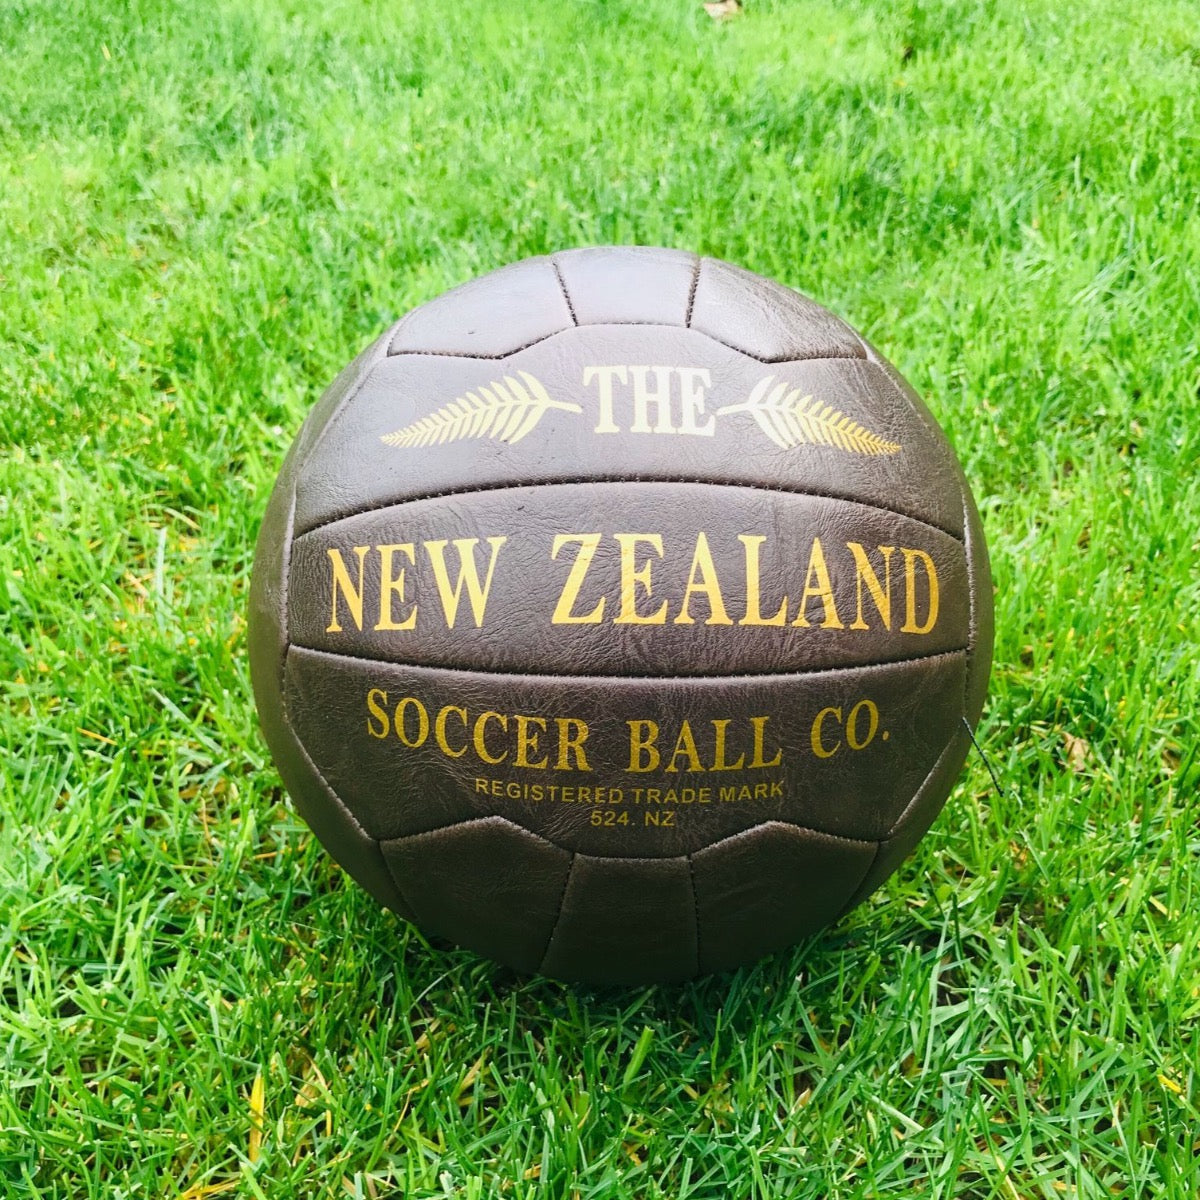 The New Zealand Leather soccer ball